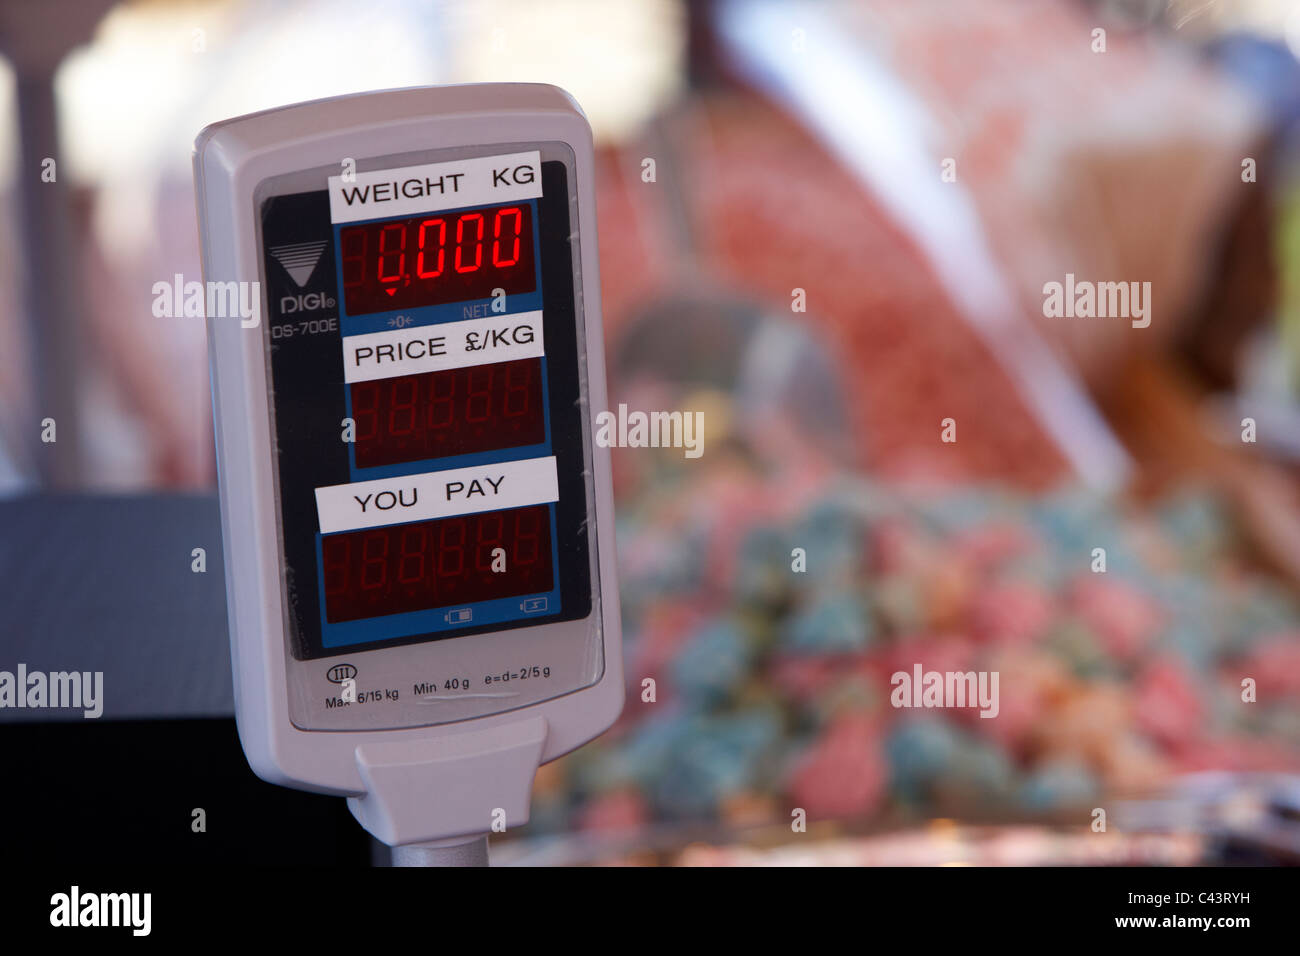 digital weighing scales on a sweet confectionery stall in a market - Stock Image